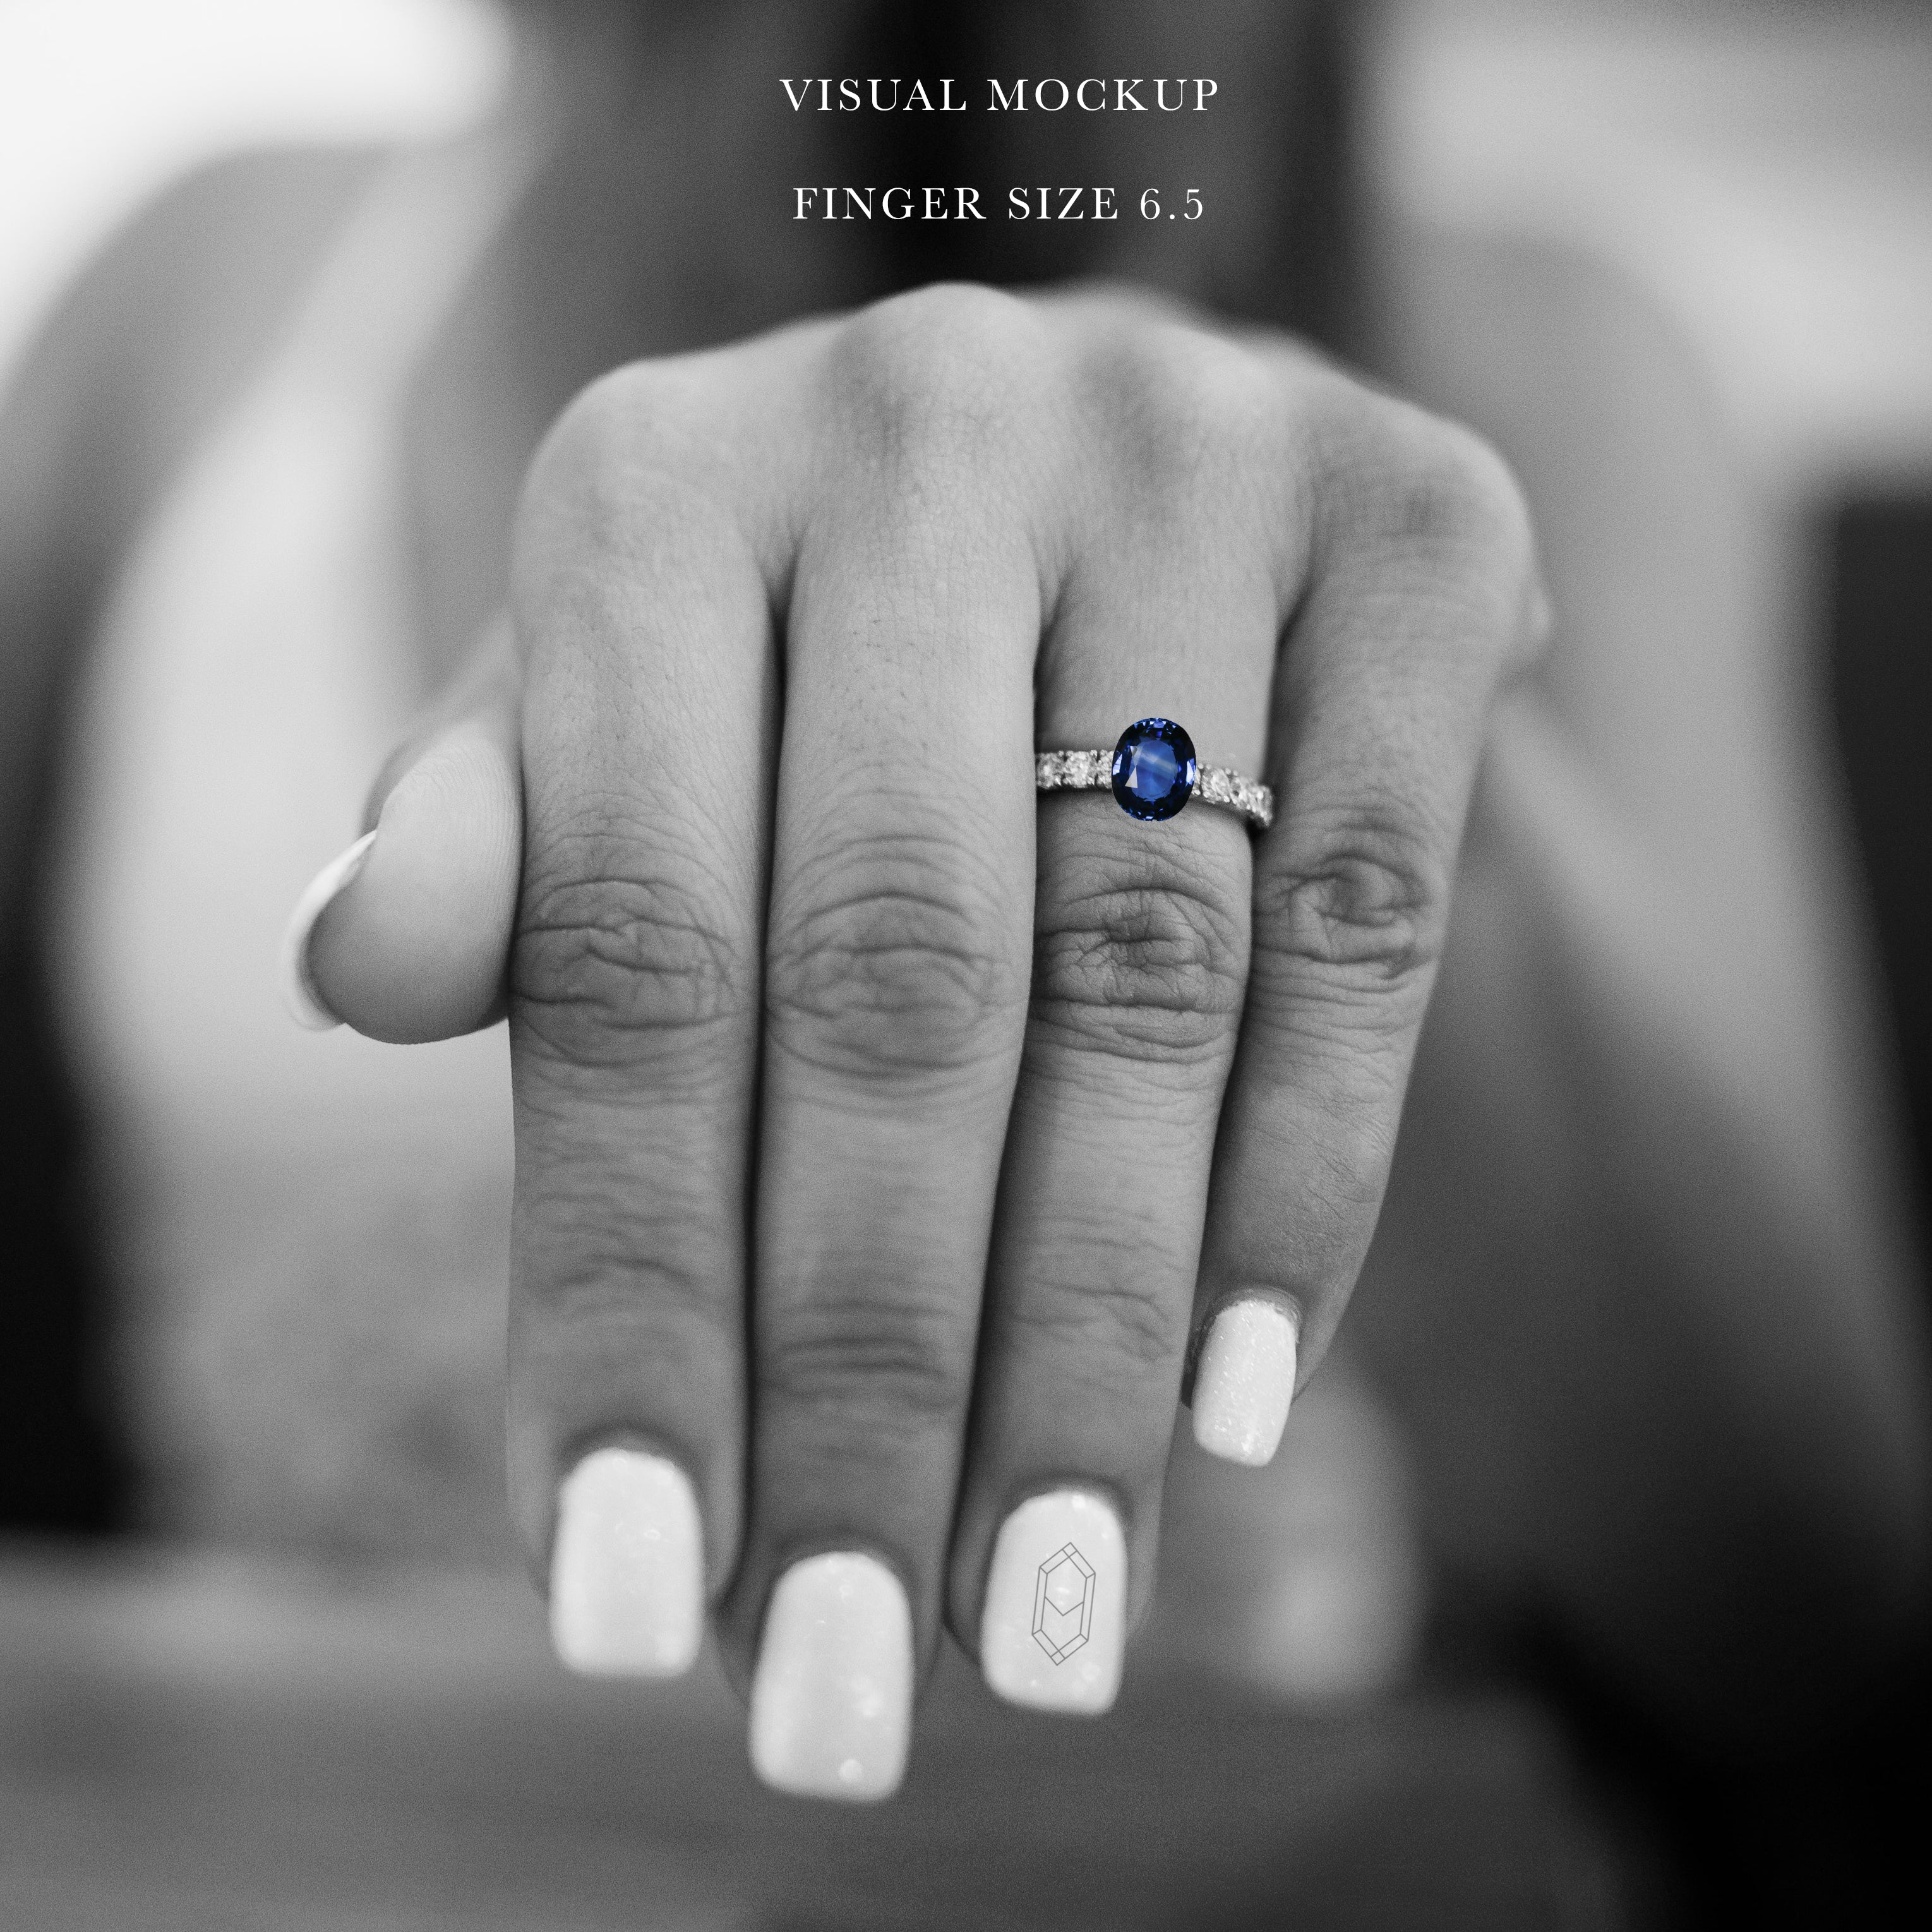 1.00 carat dark blue oval sapphire - custom work - inventory code: DBOS10 - Salt & Pepper Celestial Diamond Engagement Rings and Wedding Bands  by Midwinter Co.